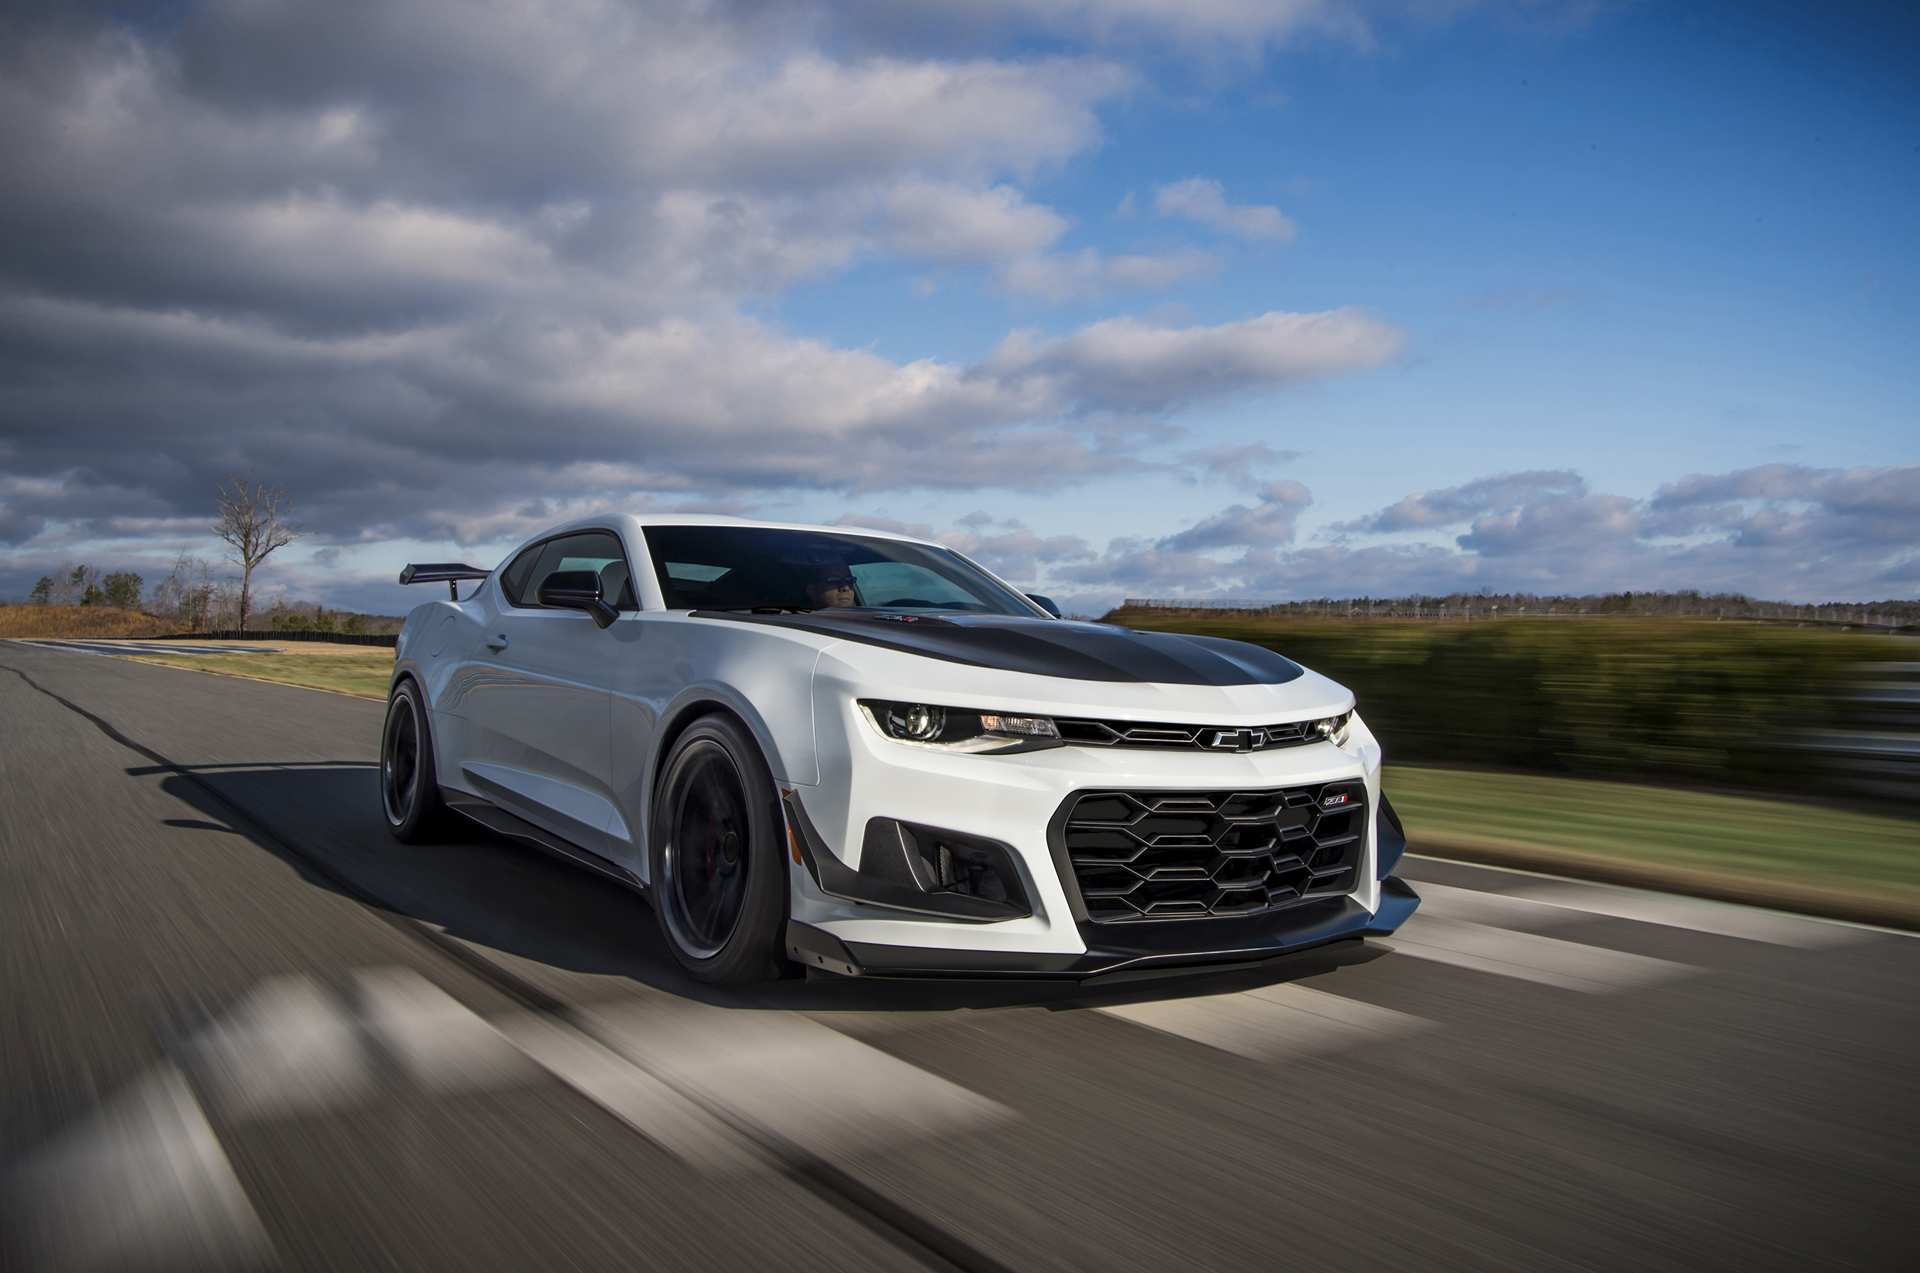 21 New 2020 Chevrolet Camaro Zl1 1Le Pictures by 2020 Chevrolet Camaro Zl1 1Le